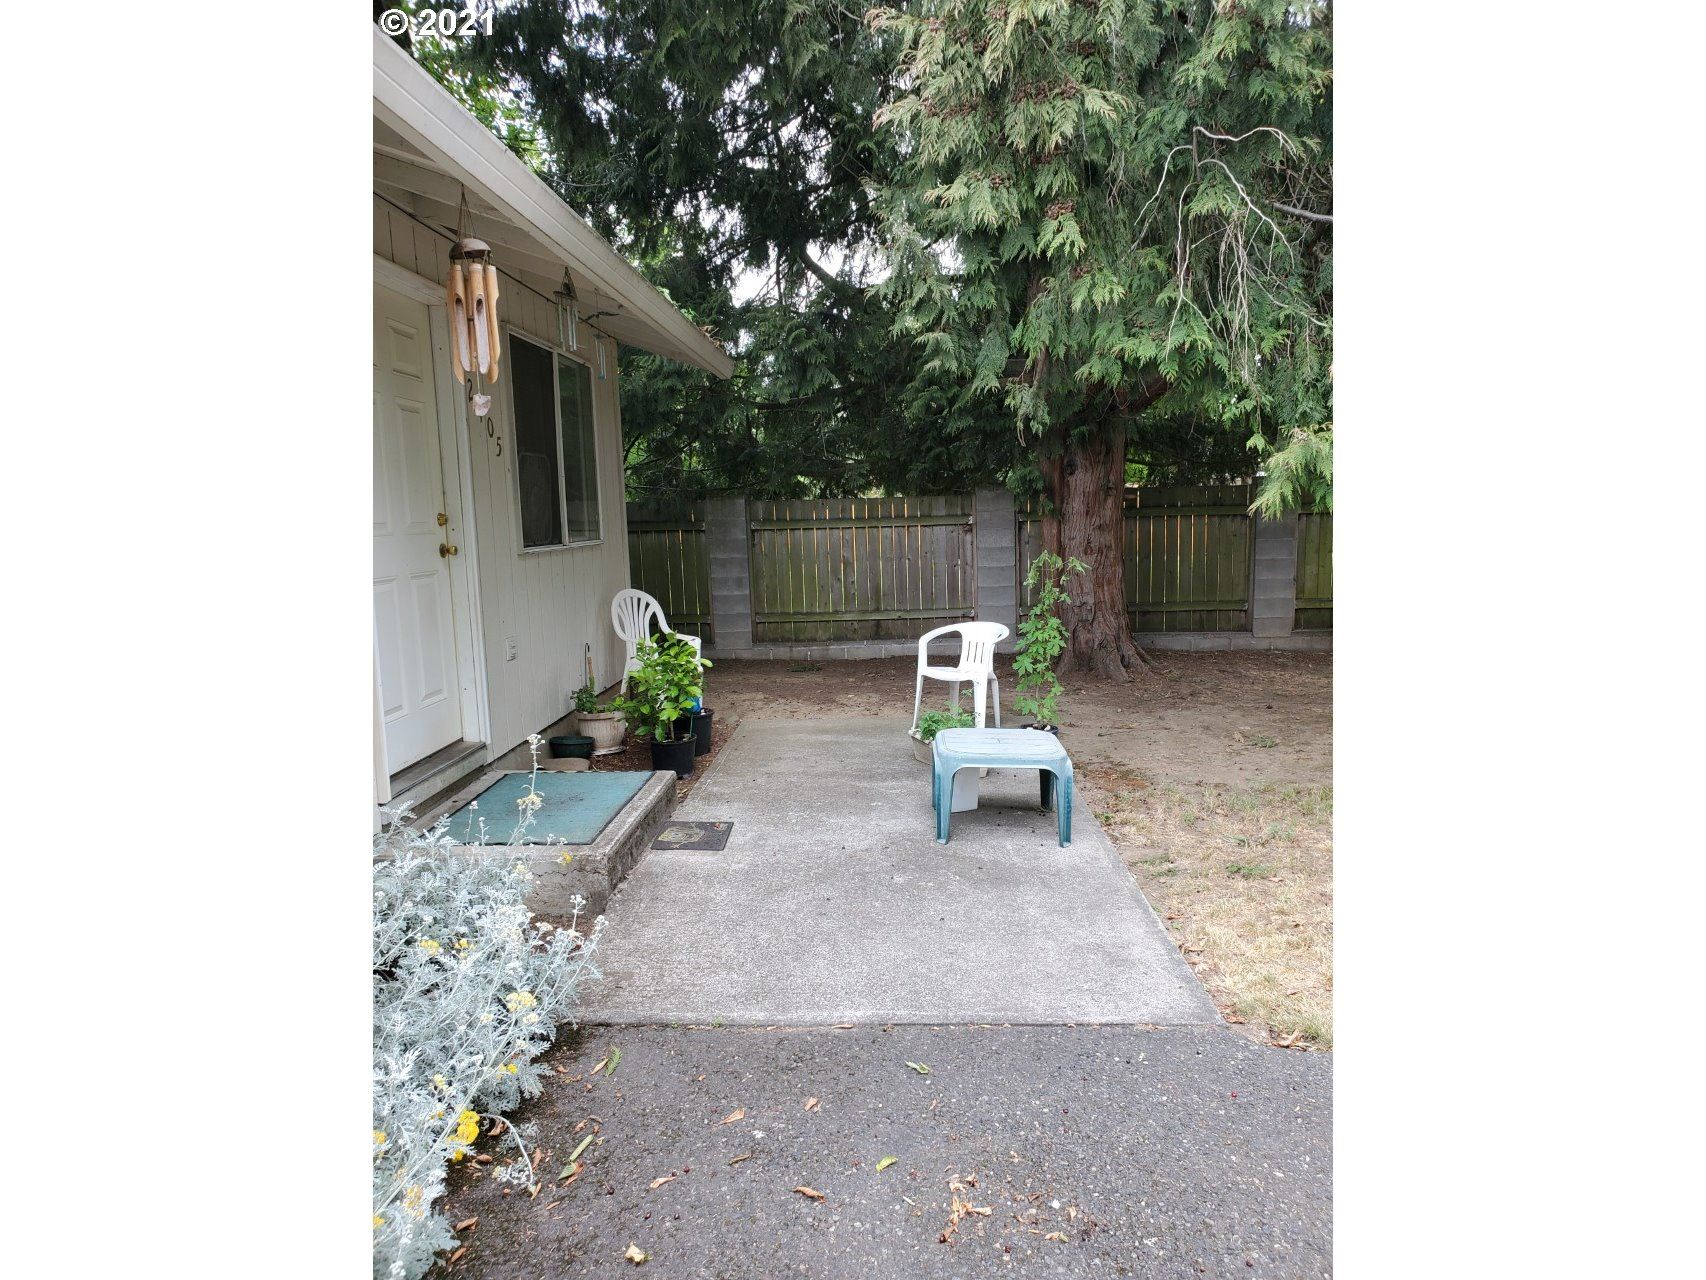 2405 SE 90th AVE, Portland, OR 97216 - MLS#: 21600988